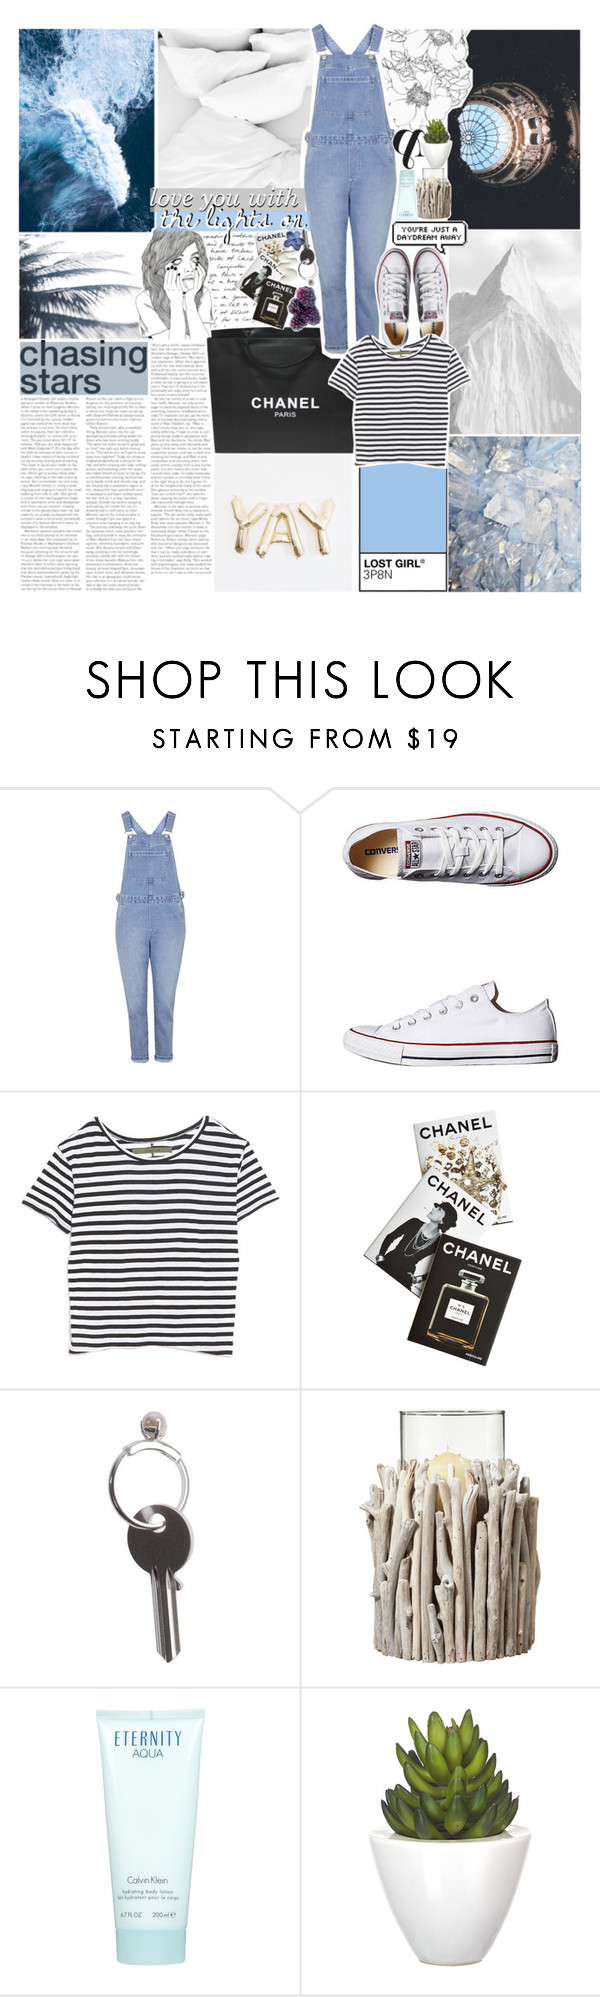 """""""THE VIBES IN THIS HOTEL ROOM -- testing tags / shoutout"""" by vanilla-chai-tea ❤ liked on Polyvore featuring Chanel, Topshop, PAM, Converse, Enza Costa, Assouline Publishing, Maison Margiela, OKA, Calvin Klein and Pomax"""